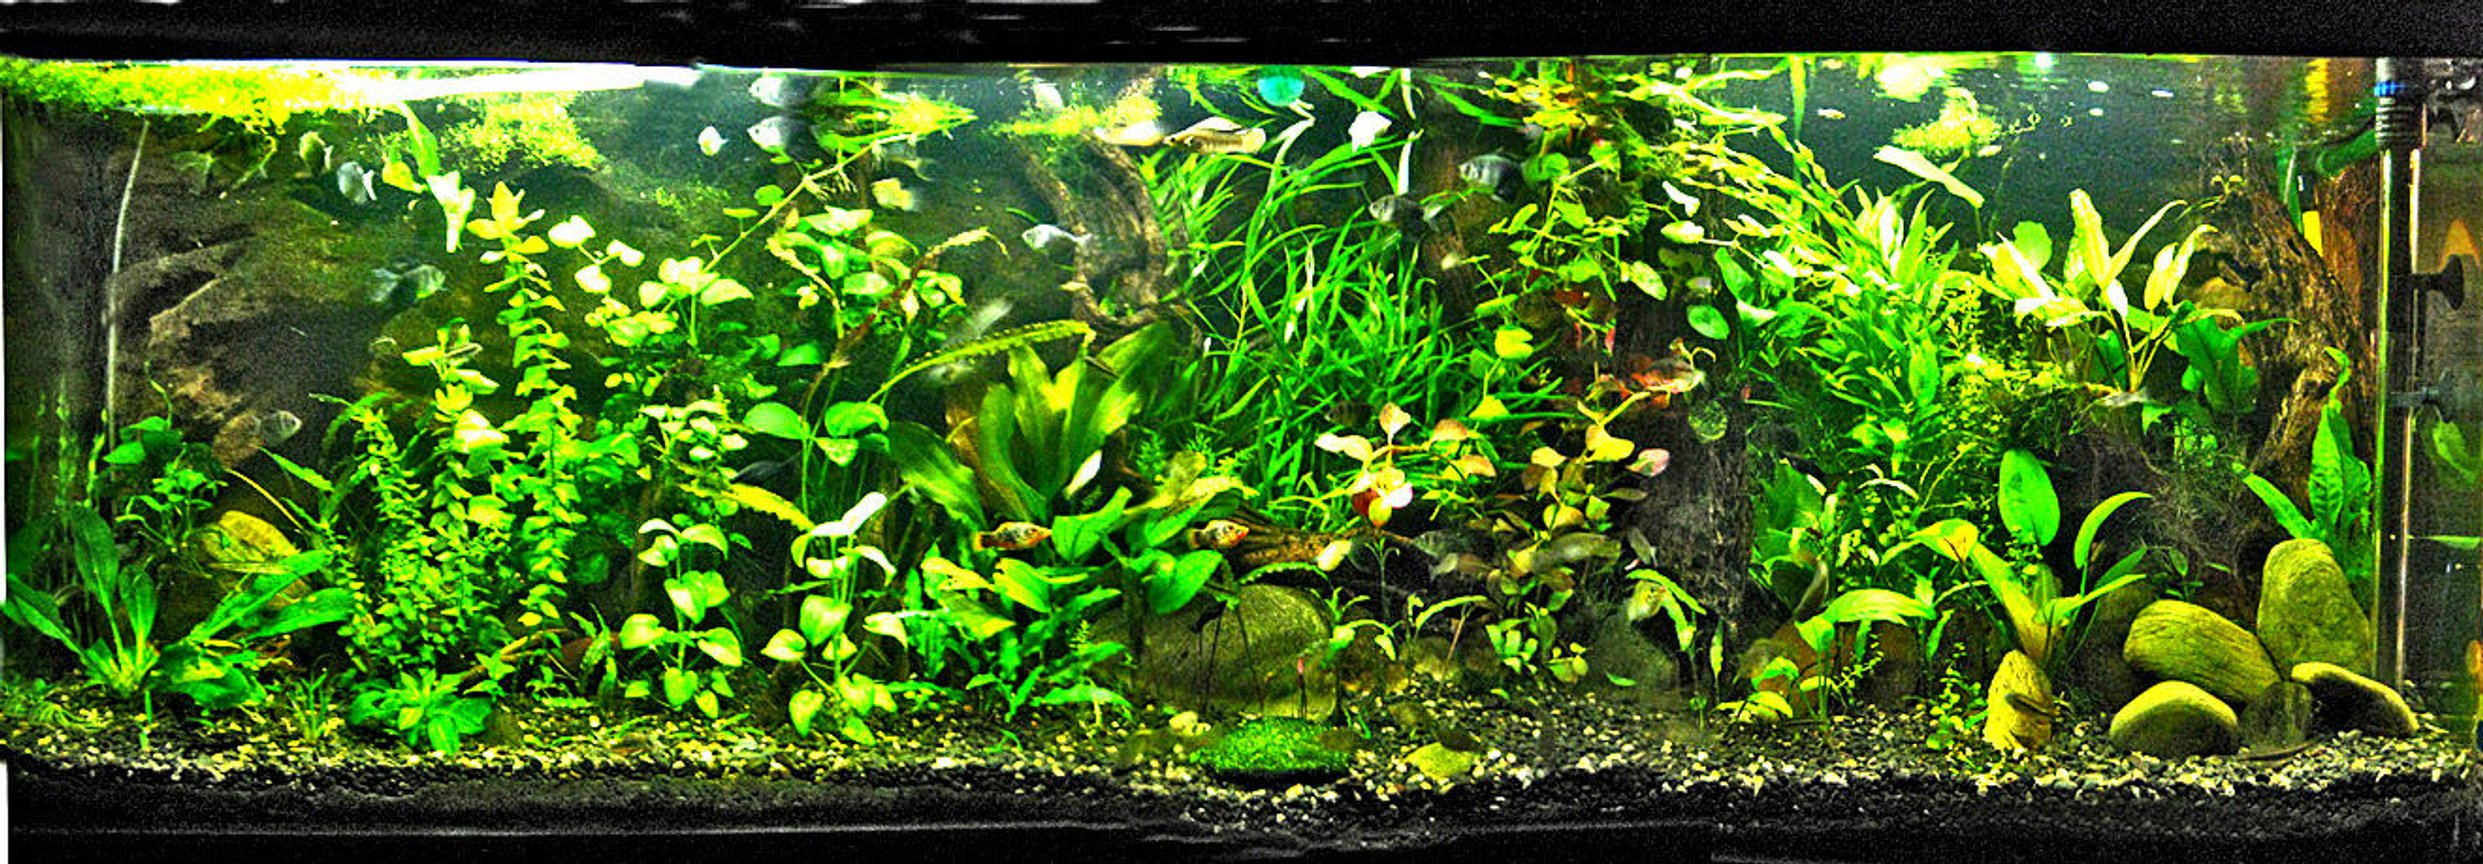 148 gallons planted tank (mostly live plants and fish) - This is my newly re-planted 600 litre tank!